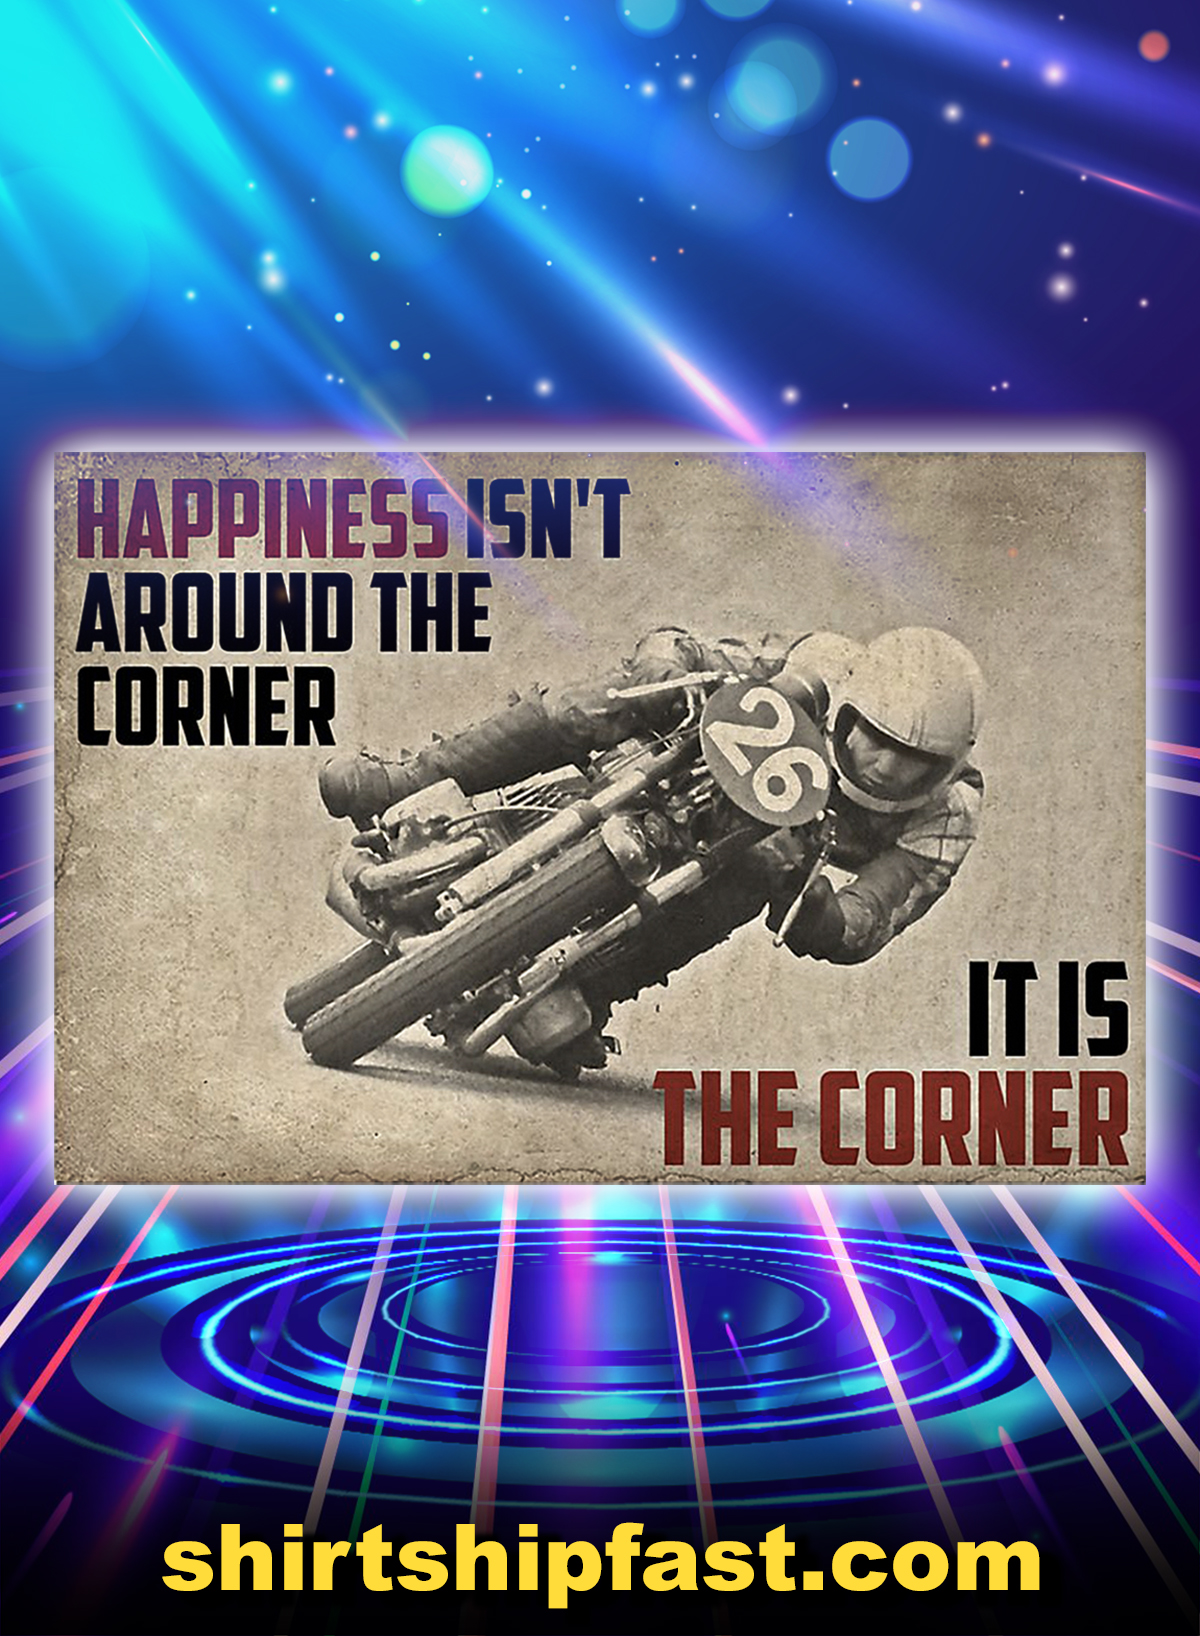 Poster Motorcycle happiness isn't around the corner - A1